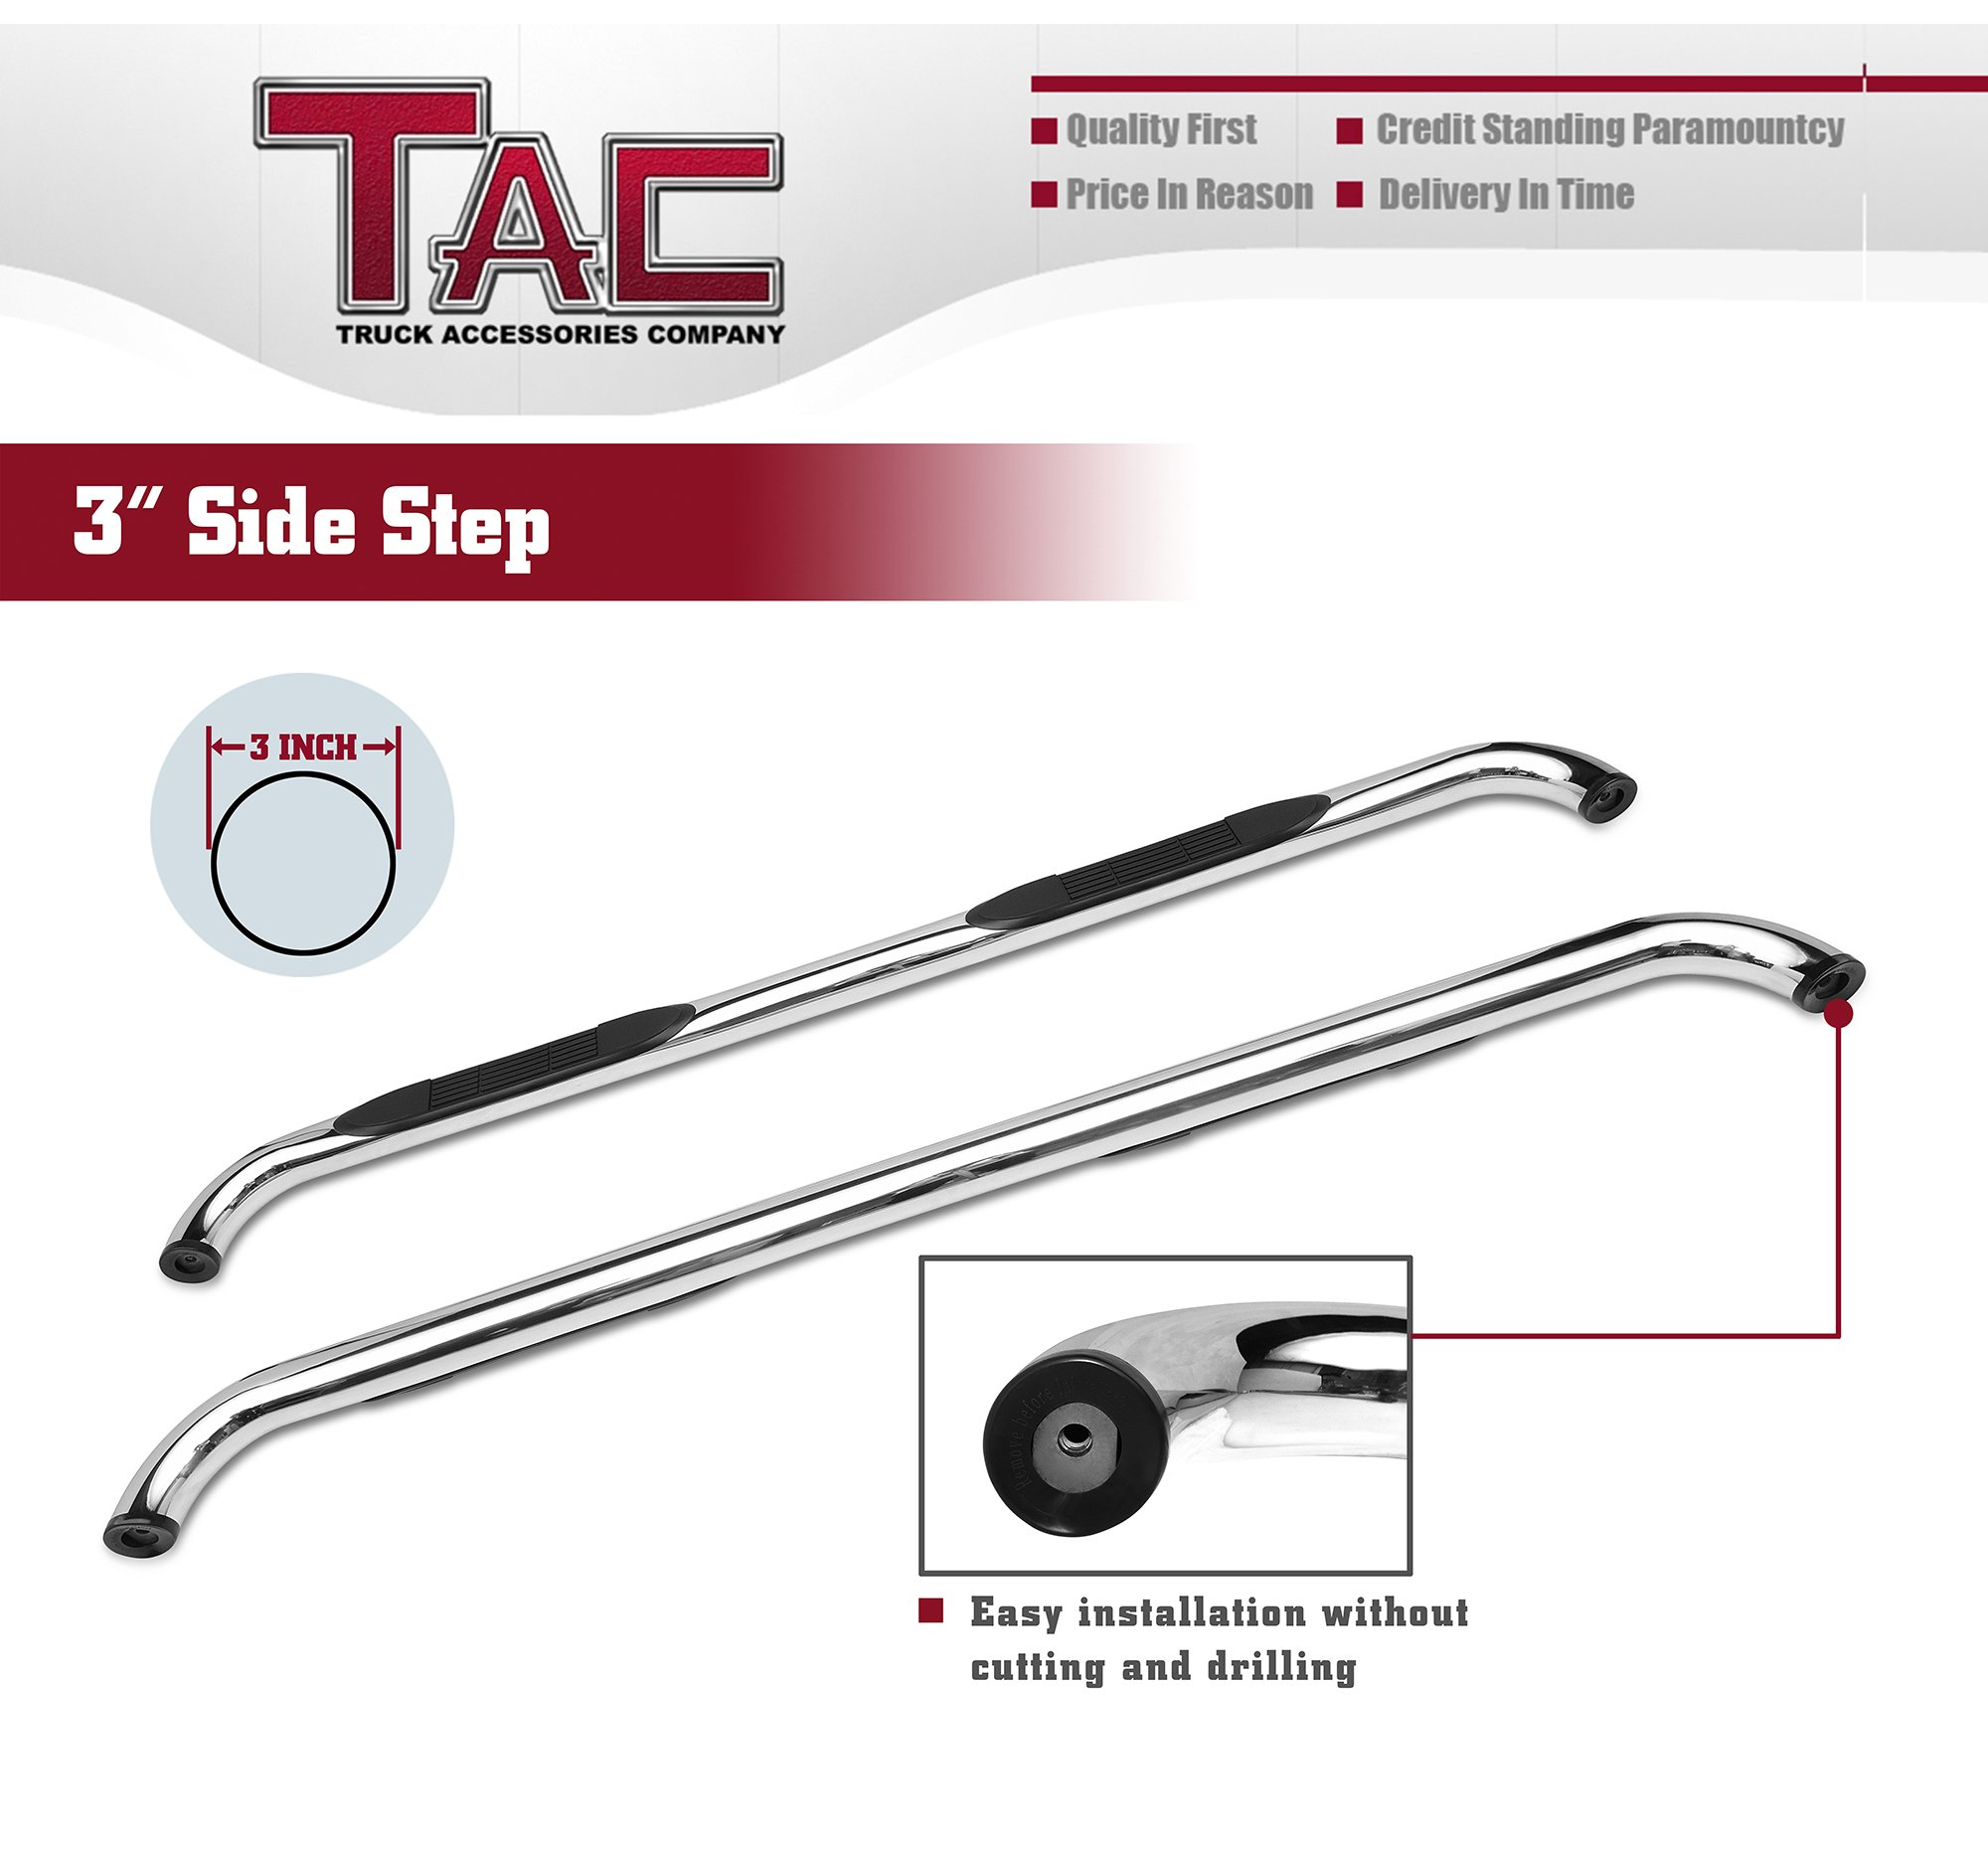 TAC Side Steps Fit Chevy Silverado/GMC Sierra 1999-2018 1500 & 1999-2019 2500/3500 Extended/Double Cab (Excl. C/K Classic) 3'' Stainless Steel Side Bars Nerf Bars Step Rails Running Boards 2 Pieces by TAC TRUCK ACCESSORIES COMPANY (Image #6)